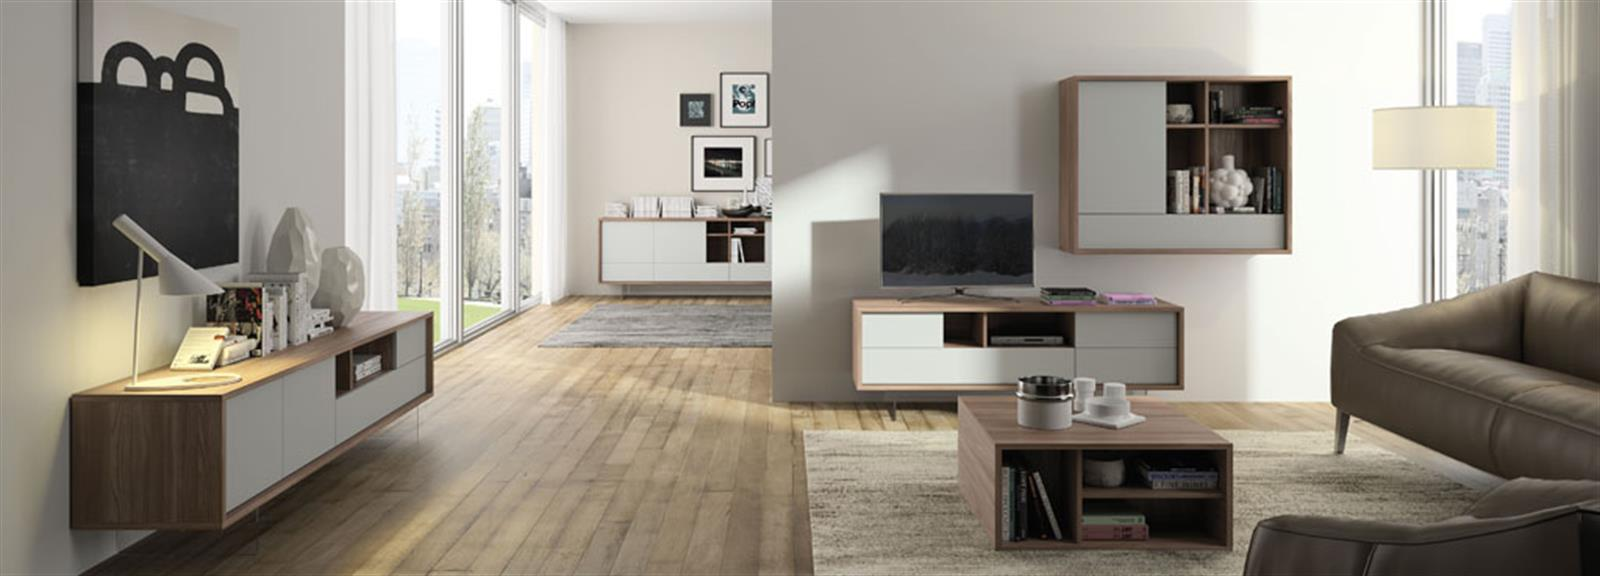 conforama s che linge r frig rateur editus. Black Bedroom Furniture Sets. Home Design Ideas